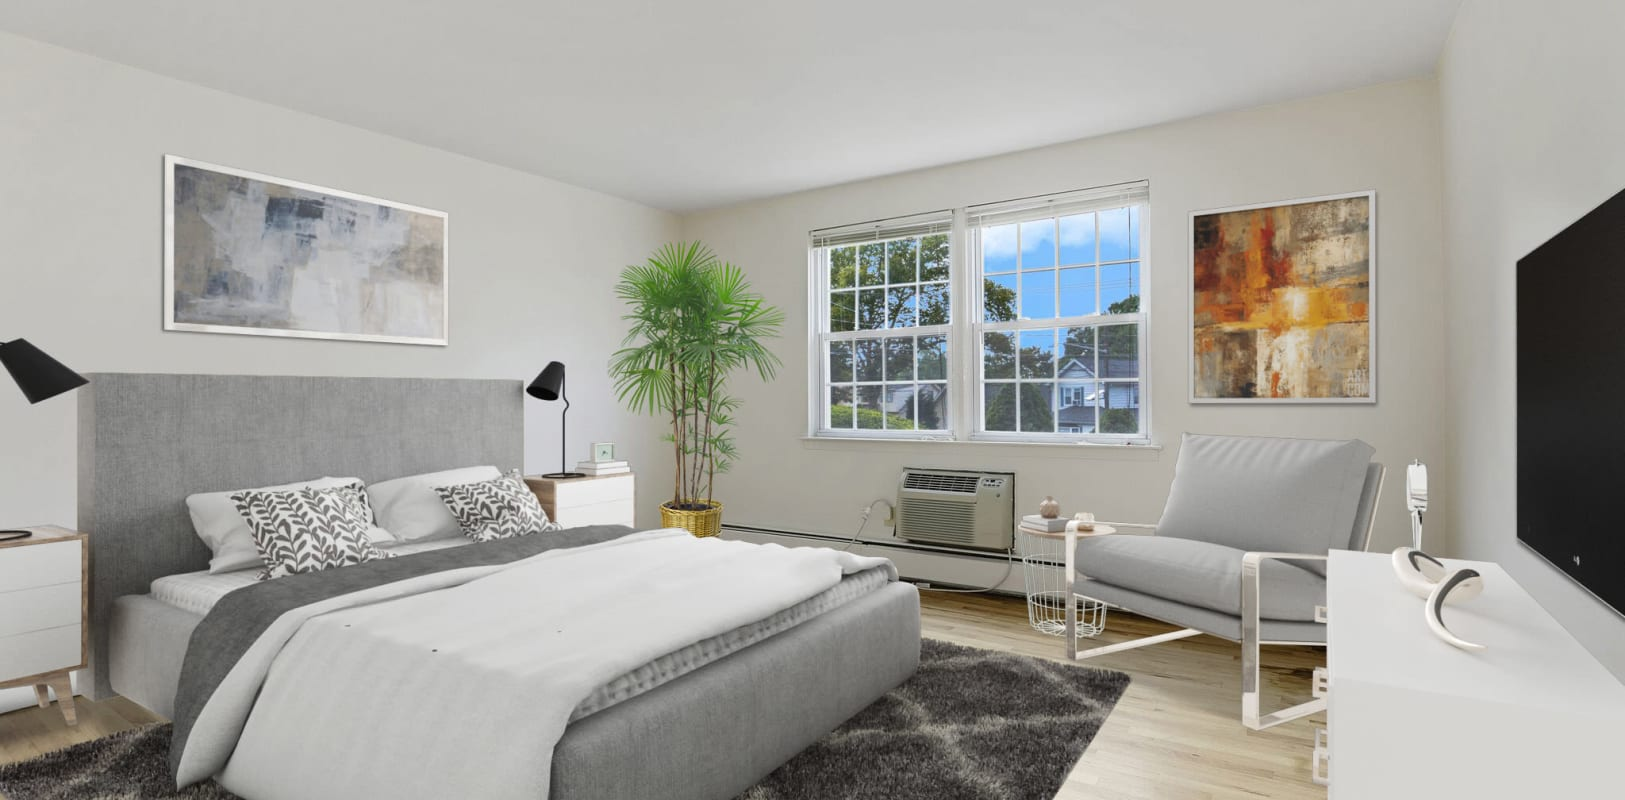 Staged lovely bedroom with floor rug and ample space at Parkway East Apartments in Caldwell, New Jersey